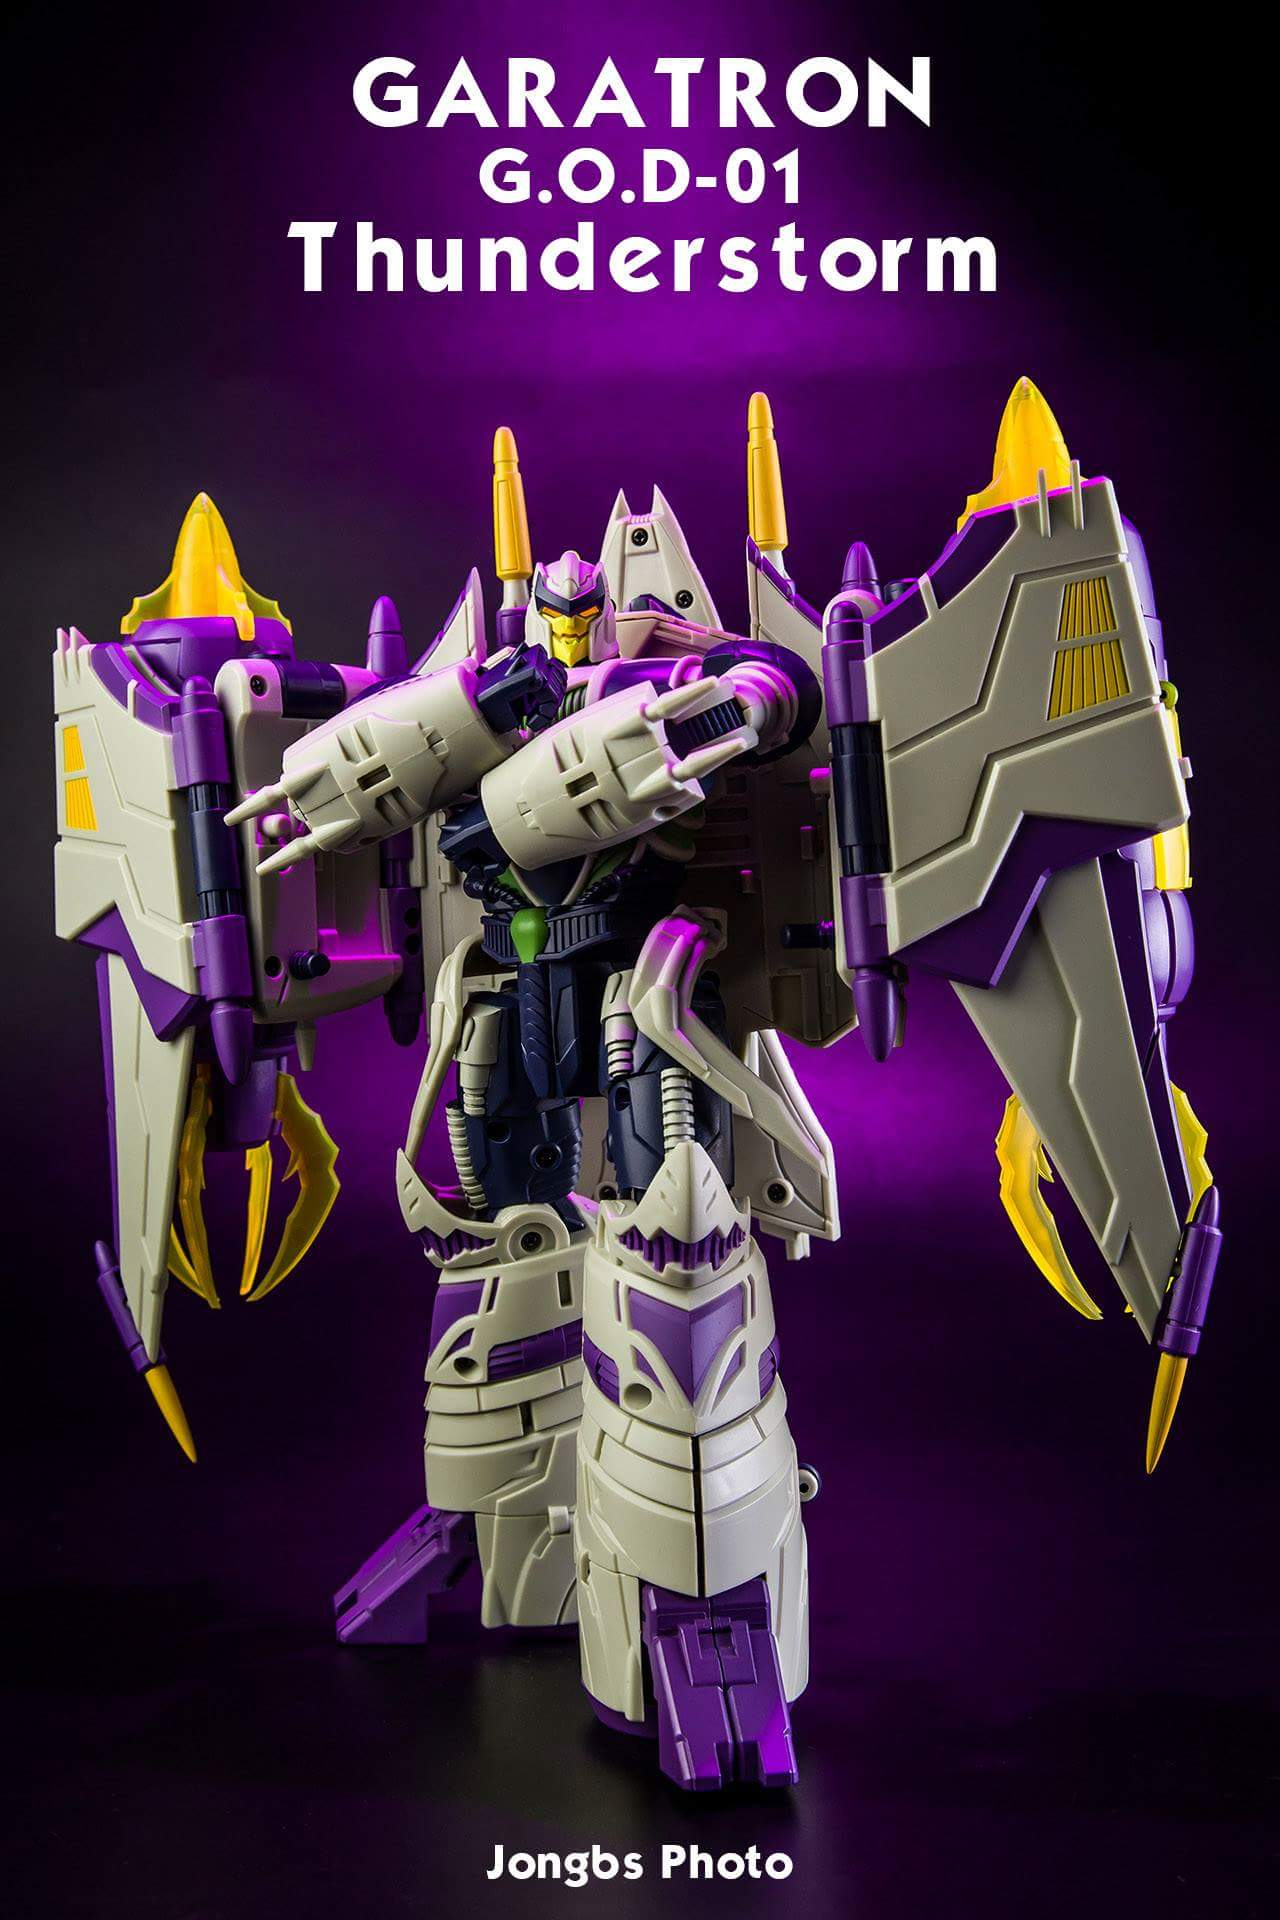 [Garatron] Produit Tiers - Gand of Devils G.O.D-01 Thunderstorm - aka Thunderwing des BD TF d'IDW - Page 2 OeG7oB0T